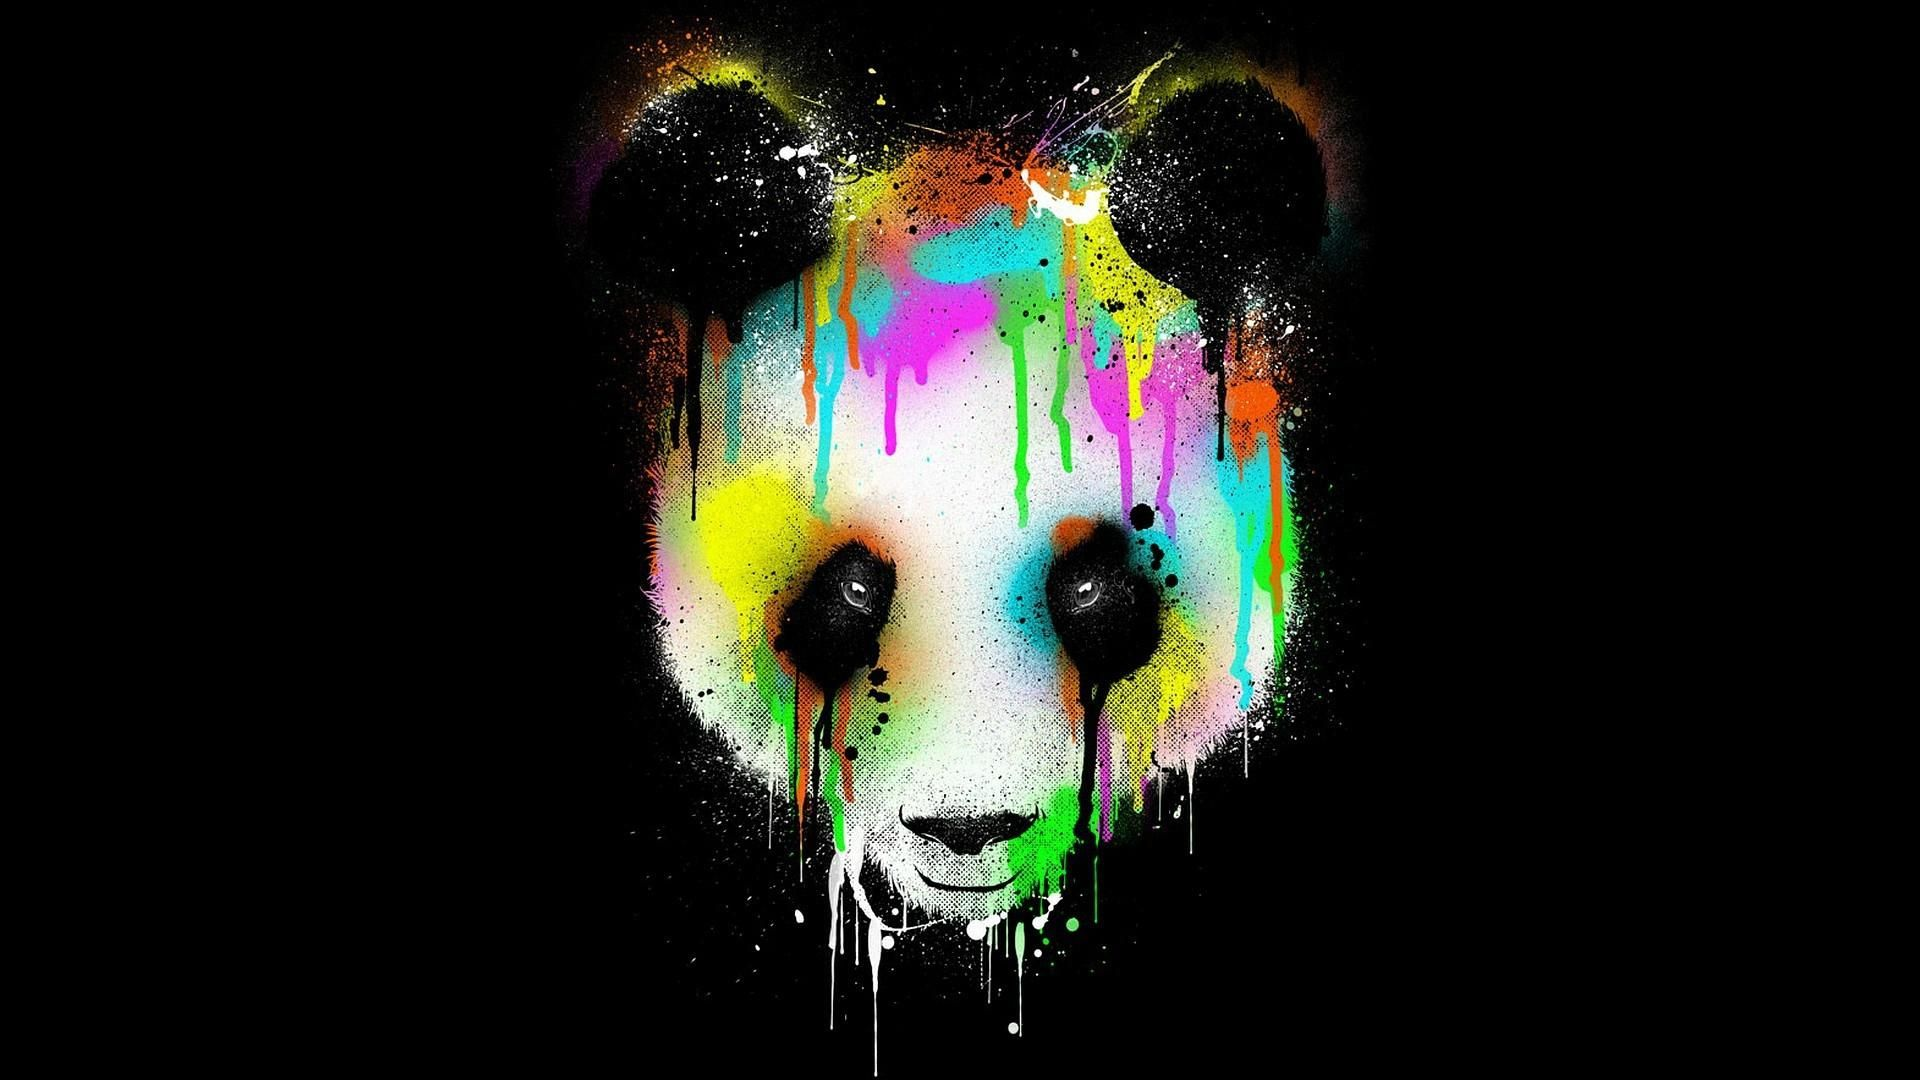 Colorful panda face >> HD Wallpaper, get it now! (With